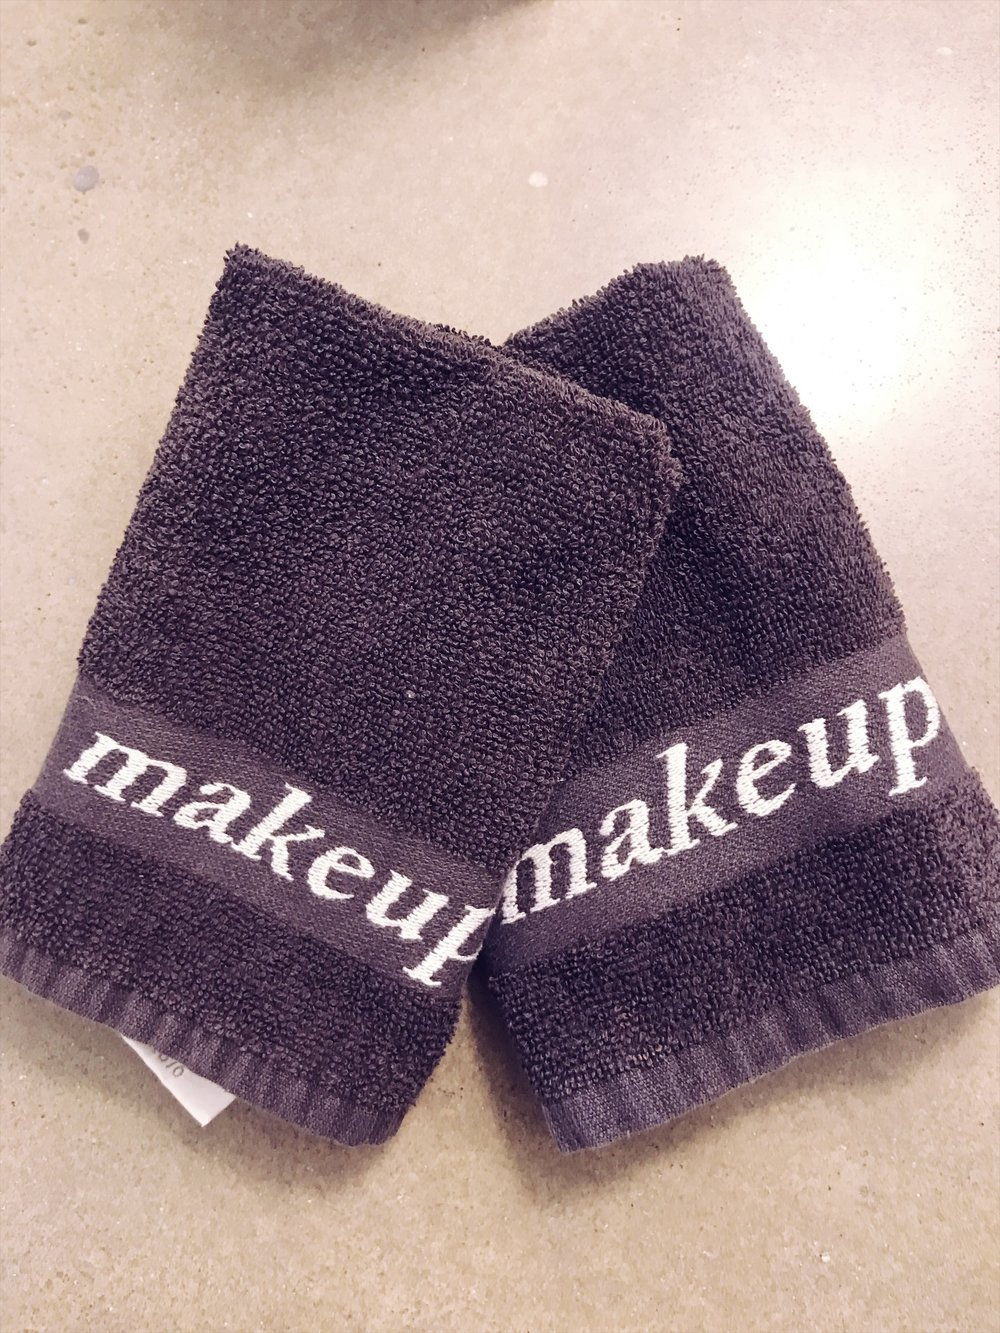 Lokal Hotel Makeup Washcloths - Photo by Nicole Fichera